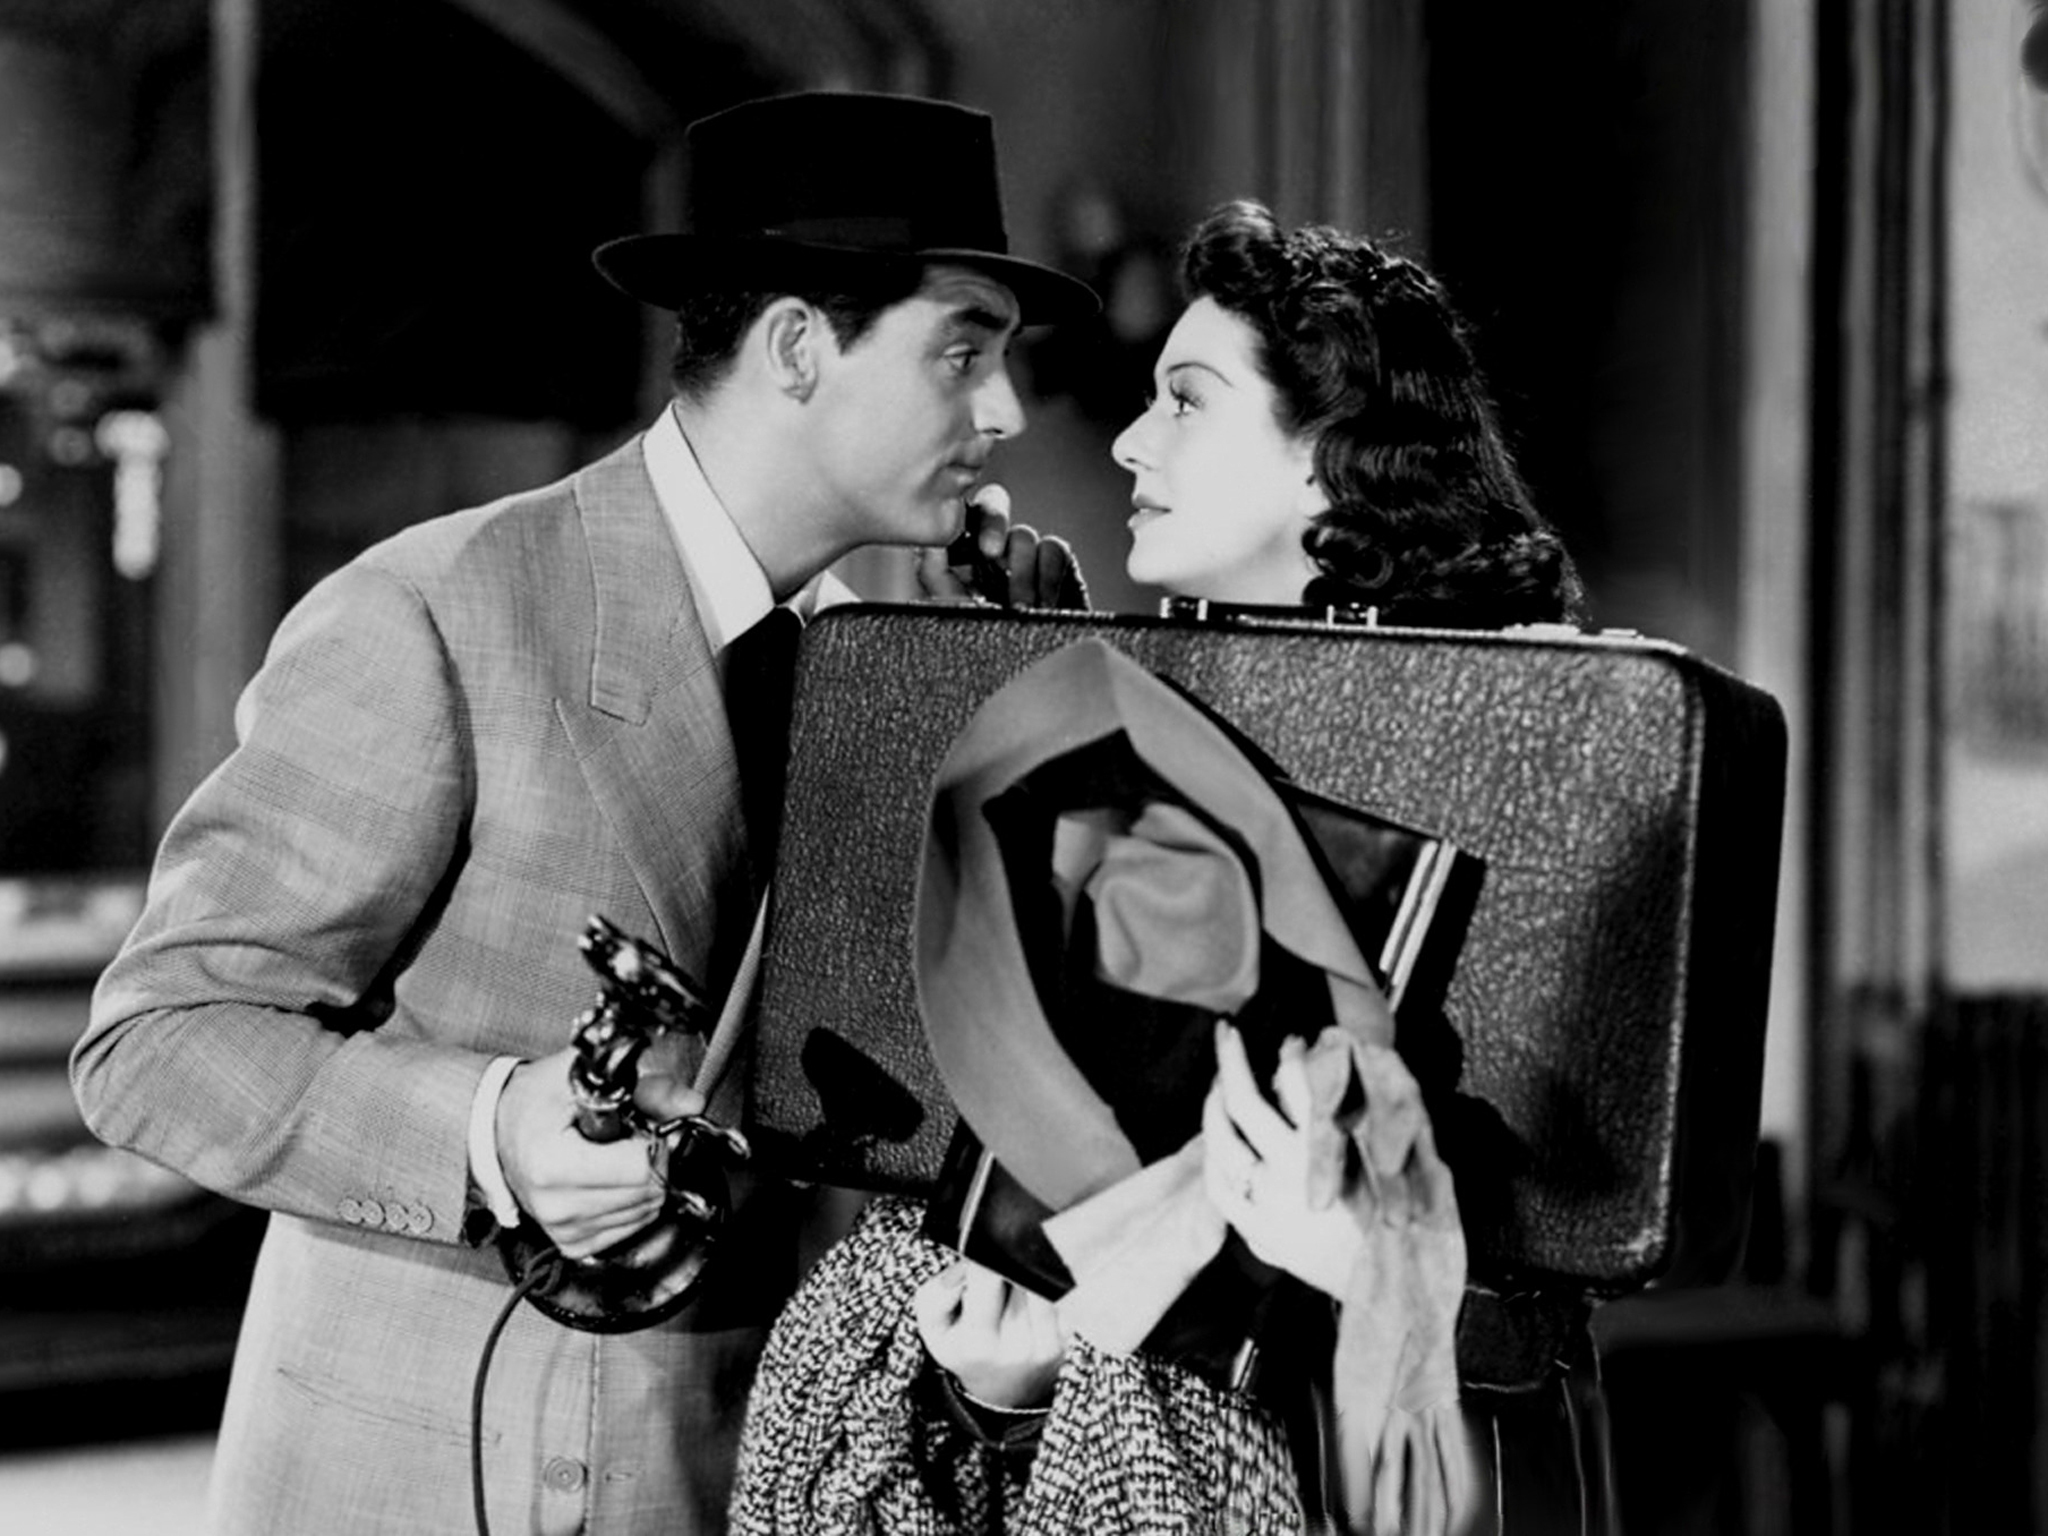 The 100 best comedy movies, His Girl Friday